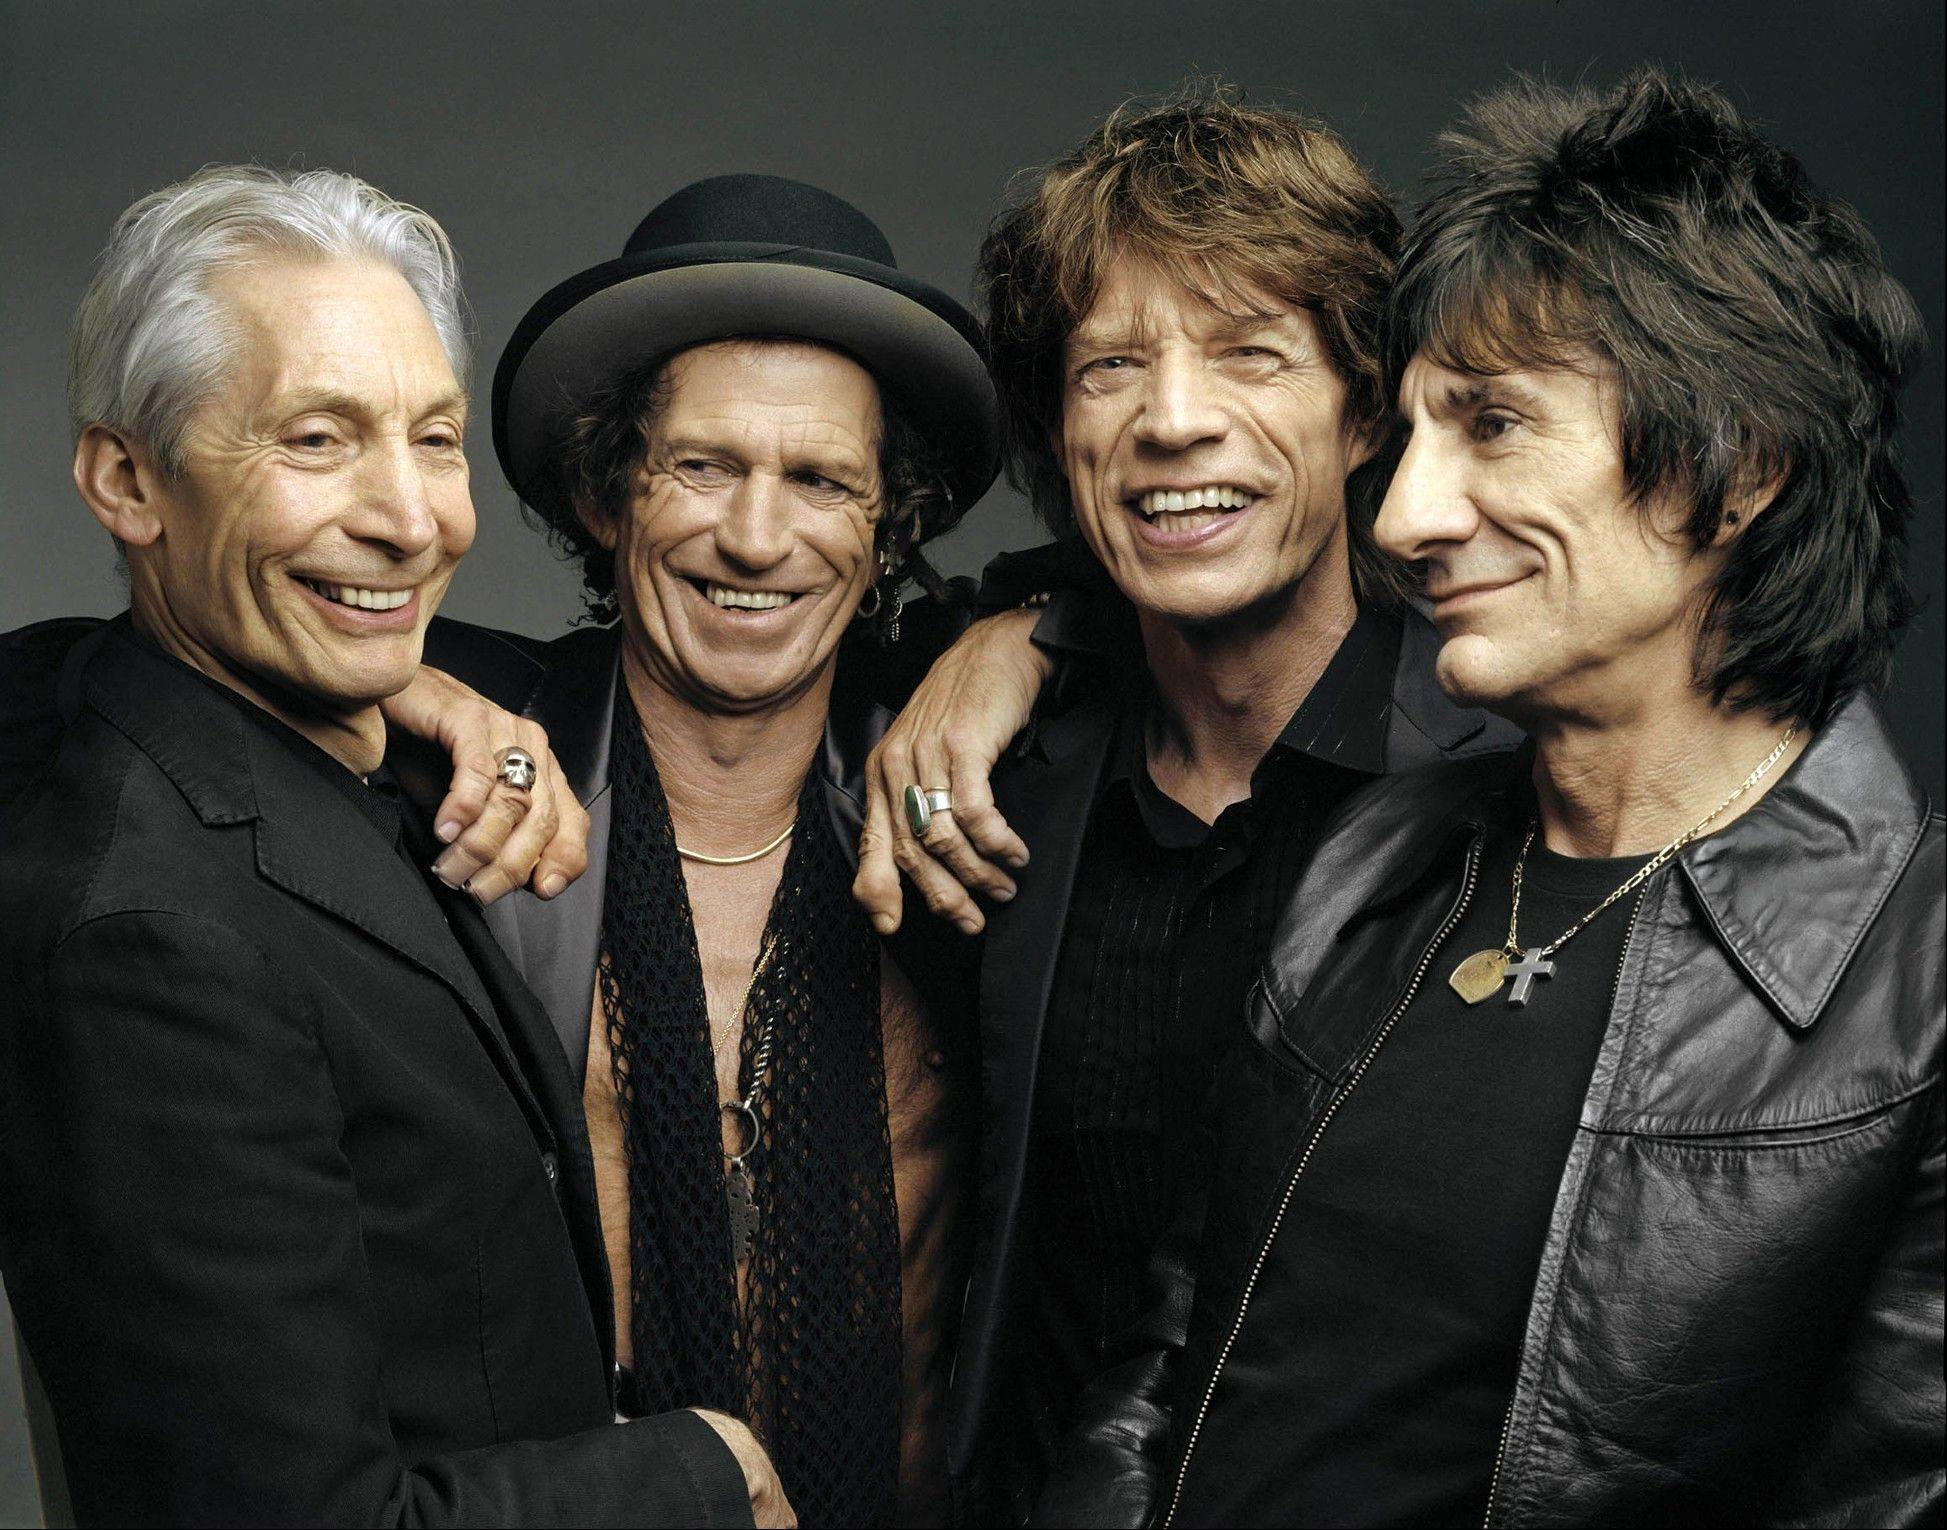 The Rolling Stones get things rolling at the United Center in Chicago this weekend.